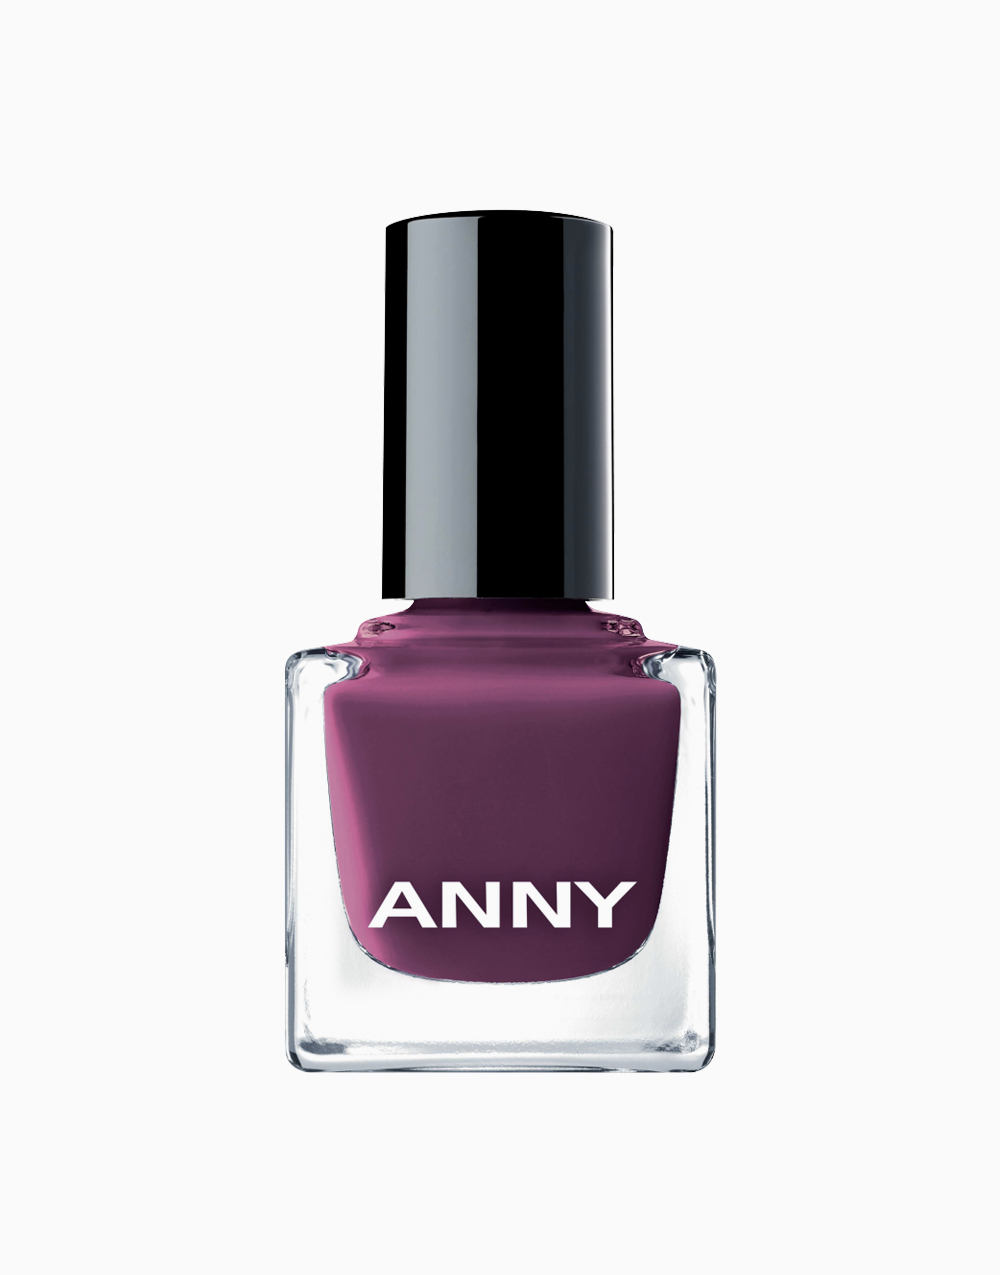 Nail Polish by Anny | MYSTIC BEAUTY